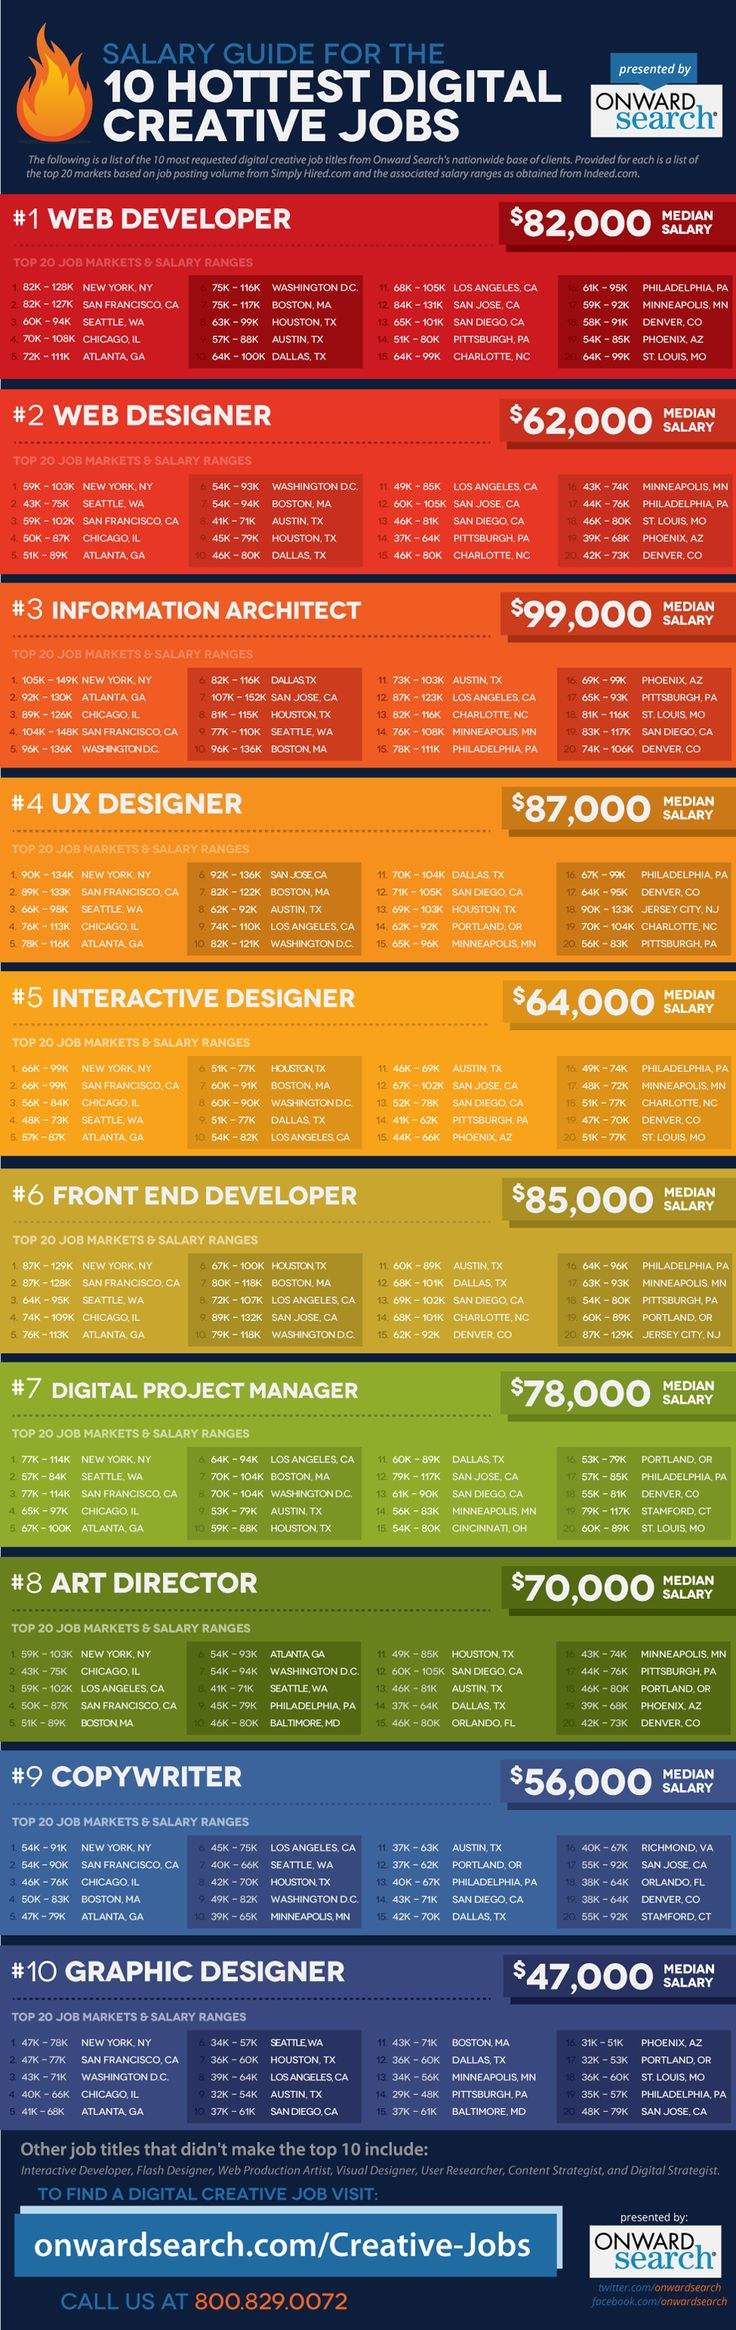 #Digital #creative careers salary guide (2012) #infographic